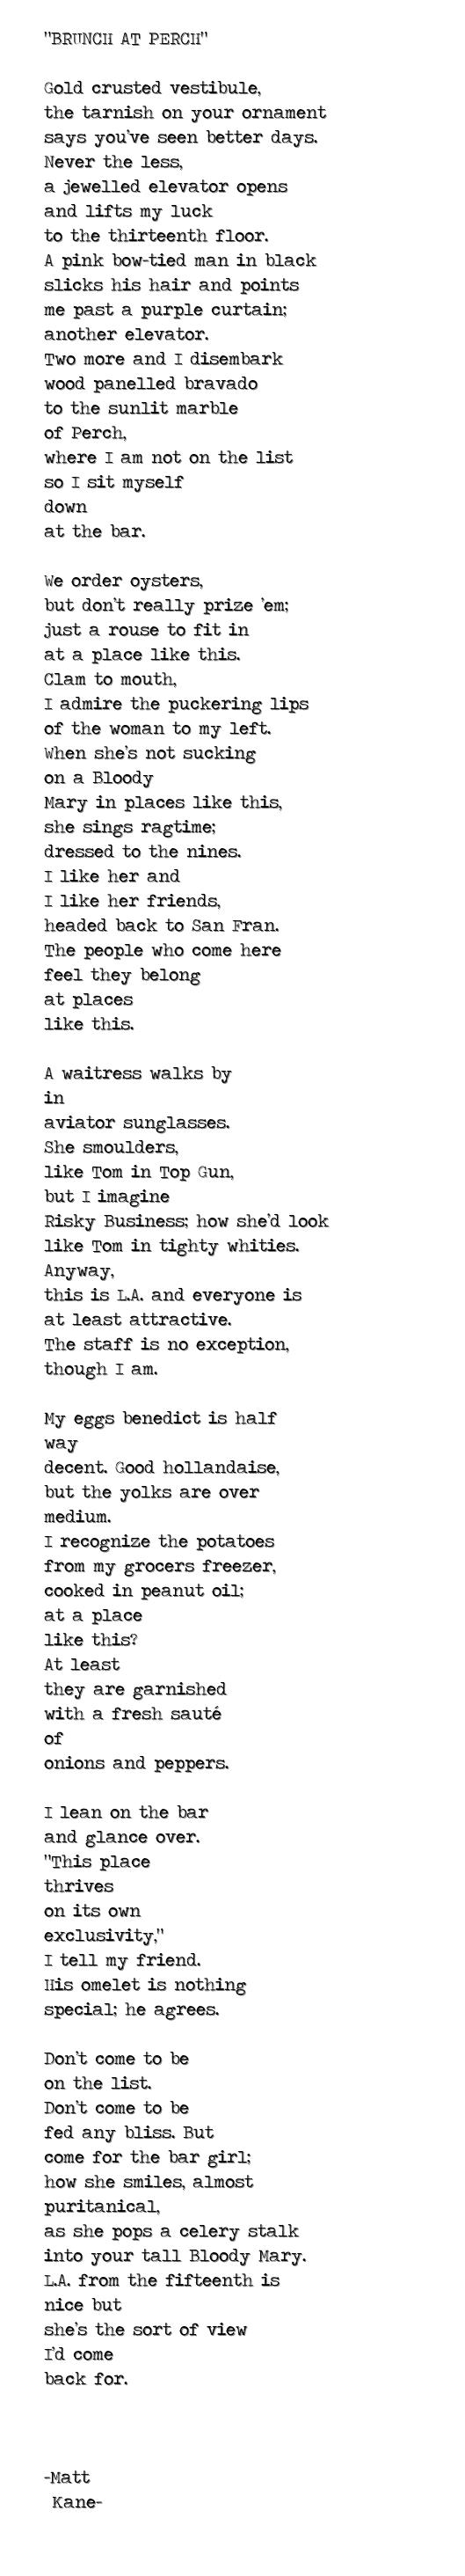 BRUNCH AT PERCH - a poem by Matt Kane